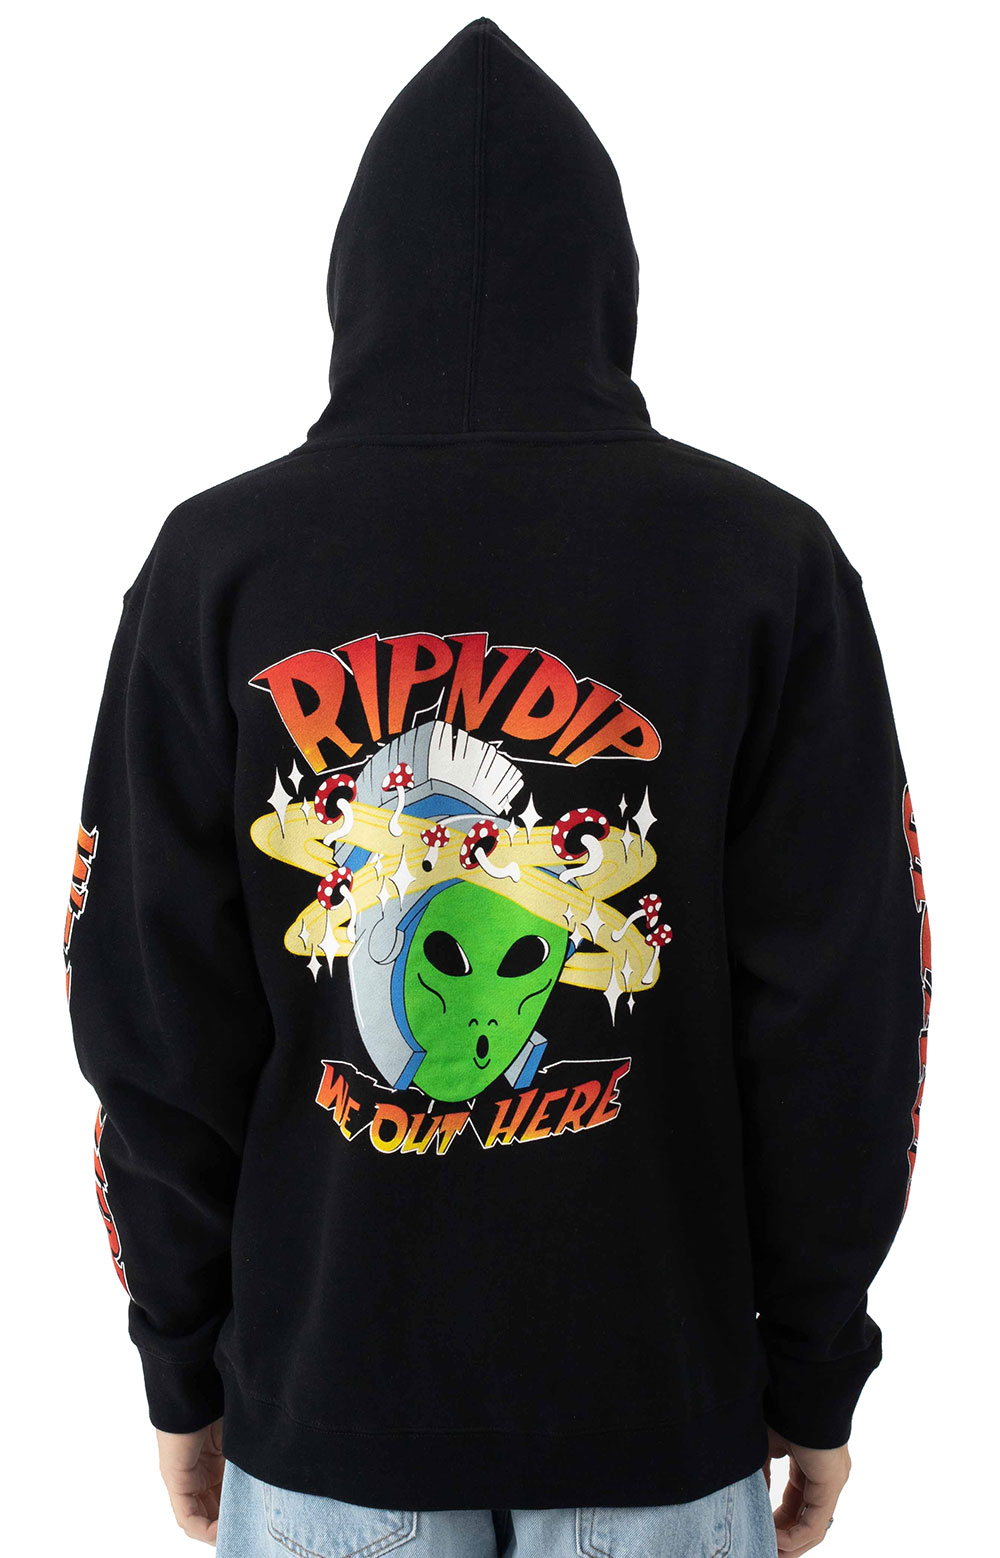 Out Of This World Pullover Hoodie - Black  4